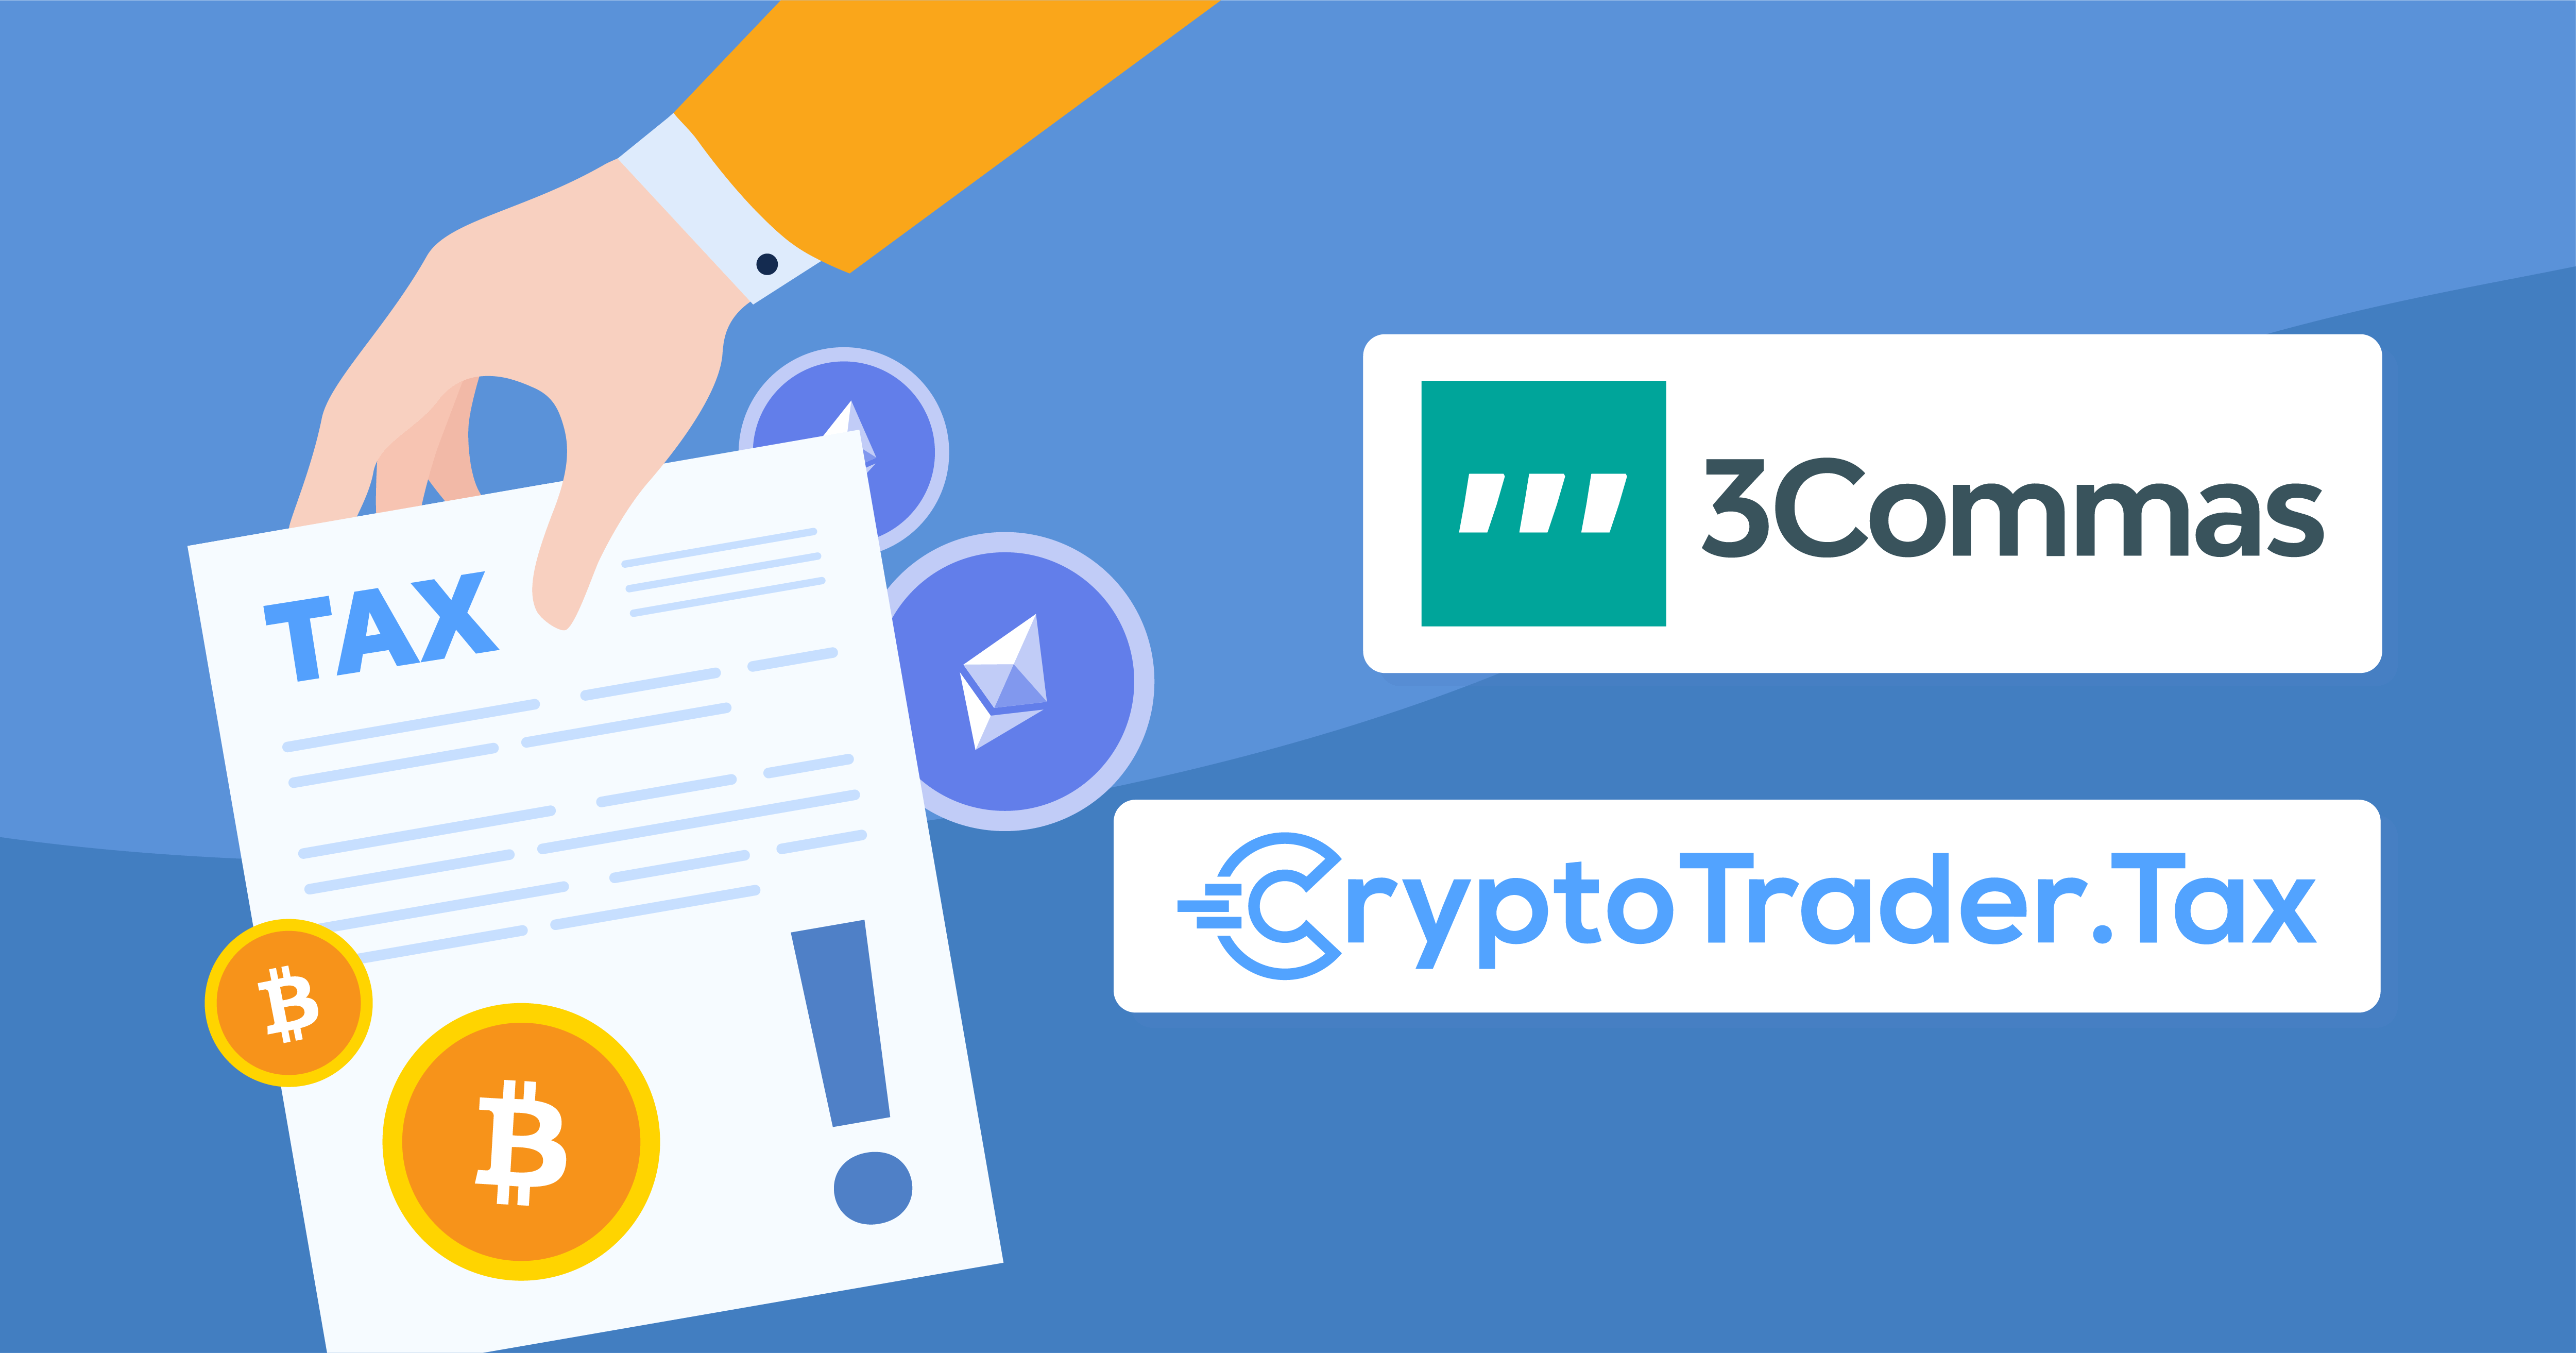 3Commas Partners Up With CryptoTrader.Tax To Bring Automatic Tax Reporting To Users